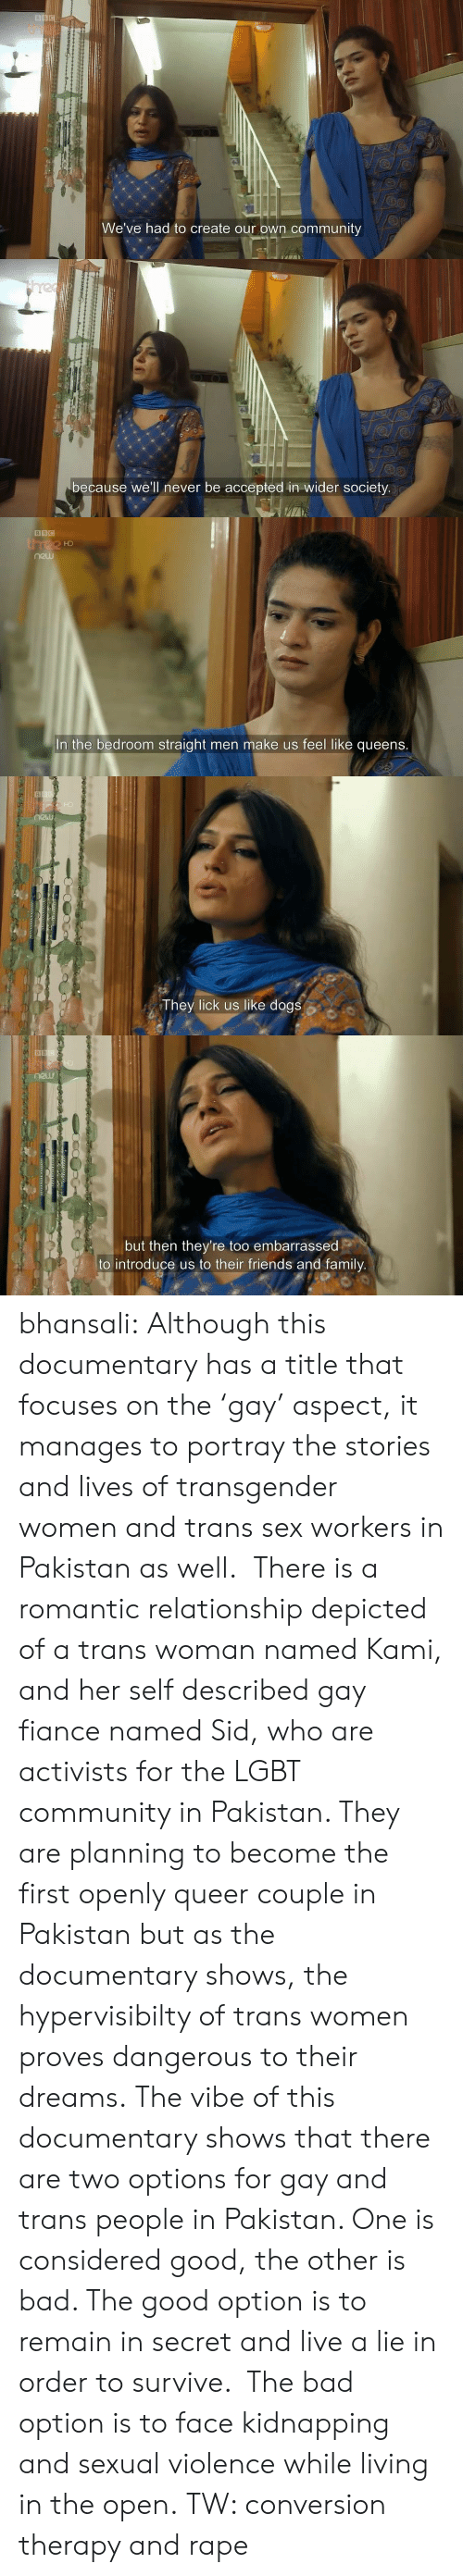 Bad, Community, and Dogs: th  We've had to create our own community   because we'll never be accepted in wider society.   HD  In the bedroom straight men make us feel like queens.   They lick us like dogs   but then they're too embarrassed  to introduce us to their friends and family bhansali:  Although this documentary has a title that focuses on the'gay' aspect, it manages to portray the stories and lives of transgender women and trans sex workers in Pakistan as well. There is a romantic relationship depicted of a trans woman named Kami, and her self described gay fiance named Sid, who are activists for the LGBT community in Pakistan. They are planning to become the first openly queer couple in Pakistan but as the documentary shows, the hypervisibilty of trans women proves dangerous to their dreams. The vibe of this documentary shows that there are two options for gay and trans people in Pakistan. One is considered good, the other is bad. The good option is to remain in secret and live a lie in order to survive. The bad option is to face kidnapping and sexual violence while living in the open. TW: conversion therapy and rape